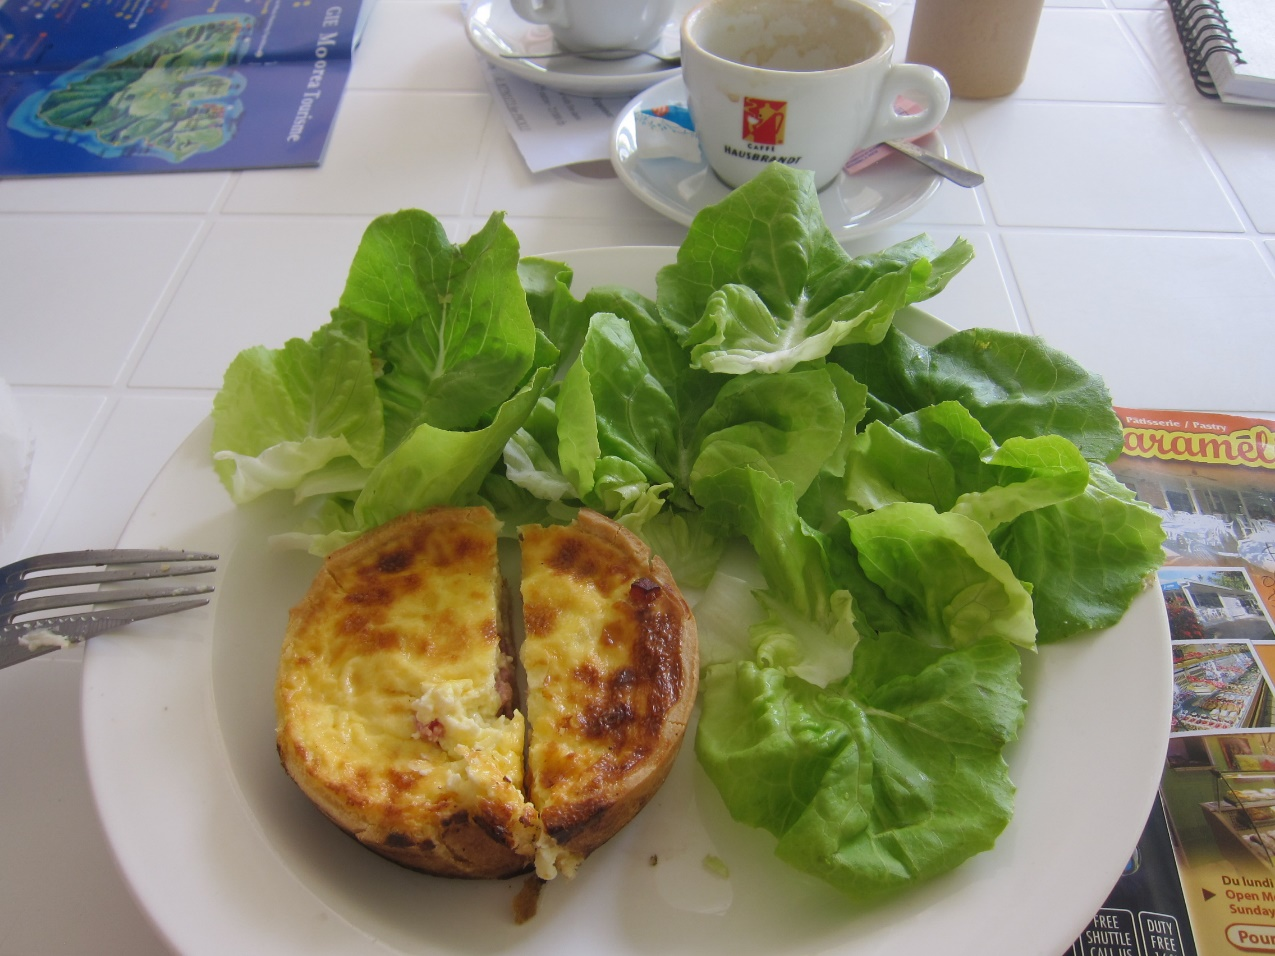 Lunch in Moorea quiche and 'salad' (R60 for the 'salad')